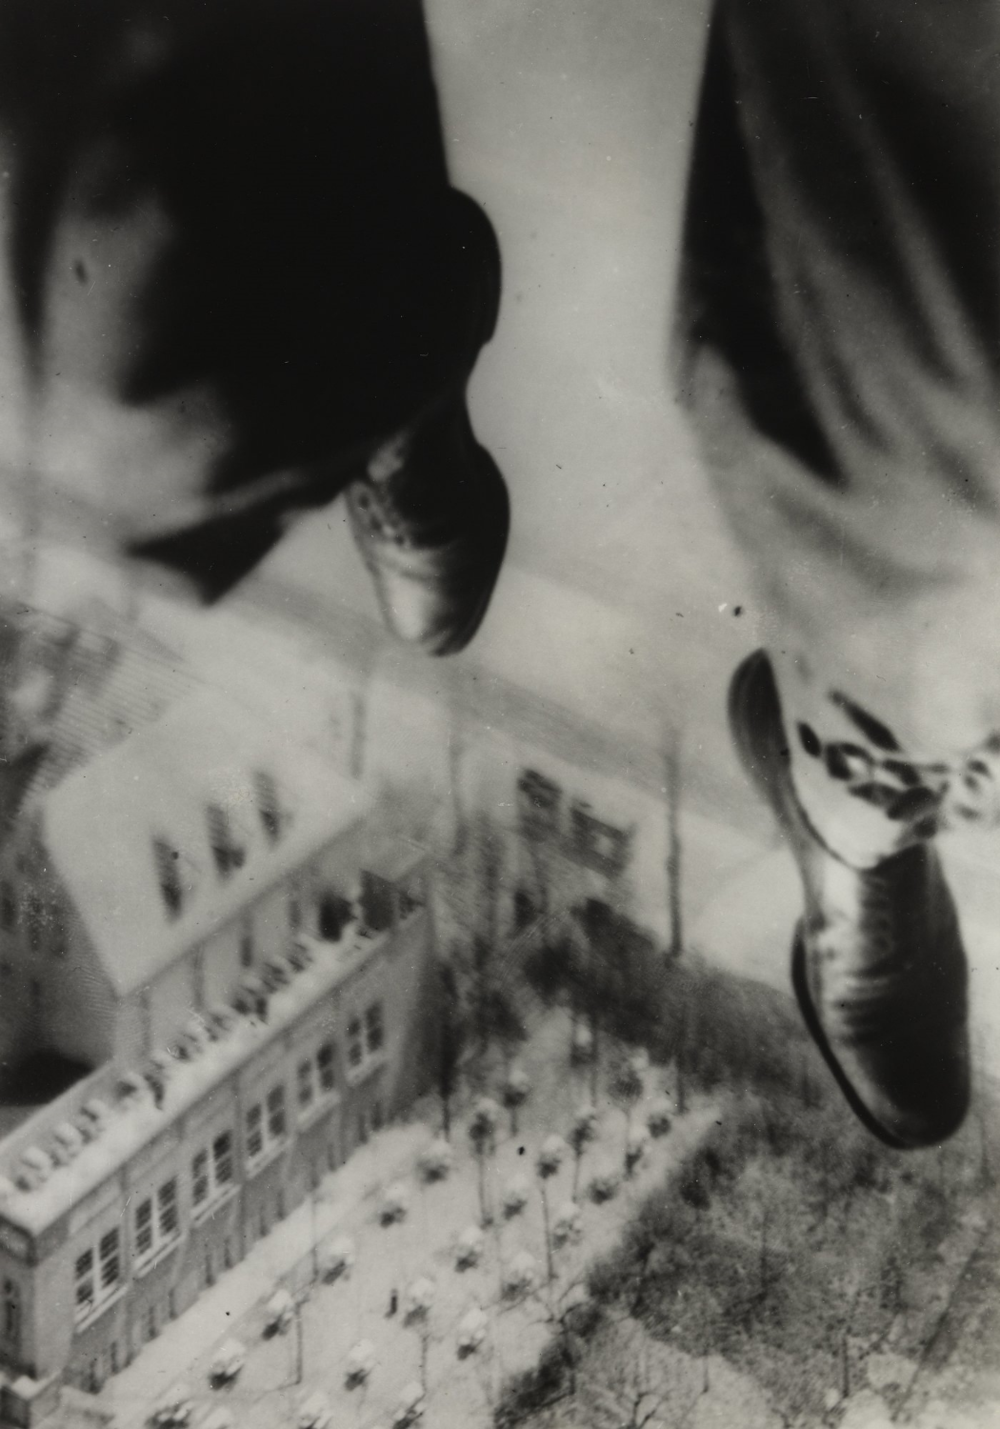 Willi Ruge (German, 1882–1961).  Seconds before Landing  detail, from the series I Photograph Myself during a Parachute Jump. 1931. Gelatin silver print, 8 1/16 × 5 9/16″ (20.4 × 14.1 cm). The Museum of Modern Art, New York. Thomas Walther Collection. Gift of Thomas Walther